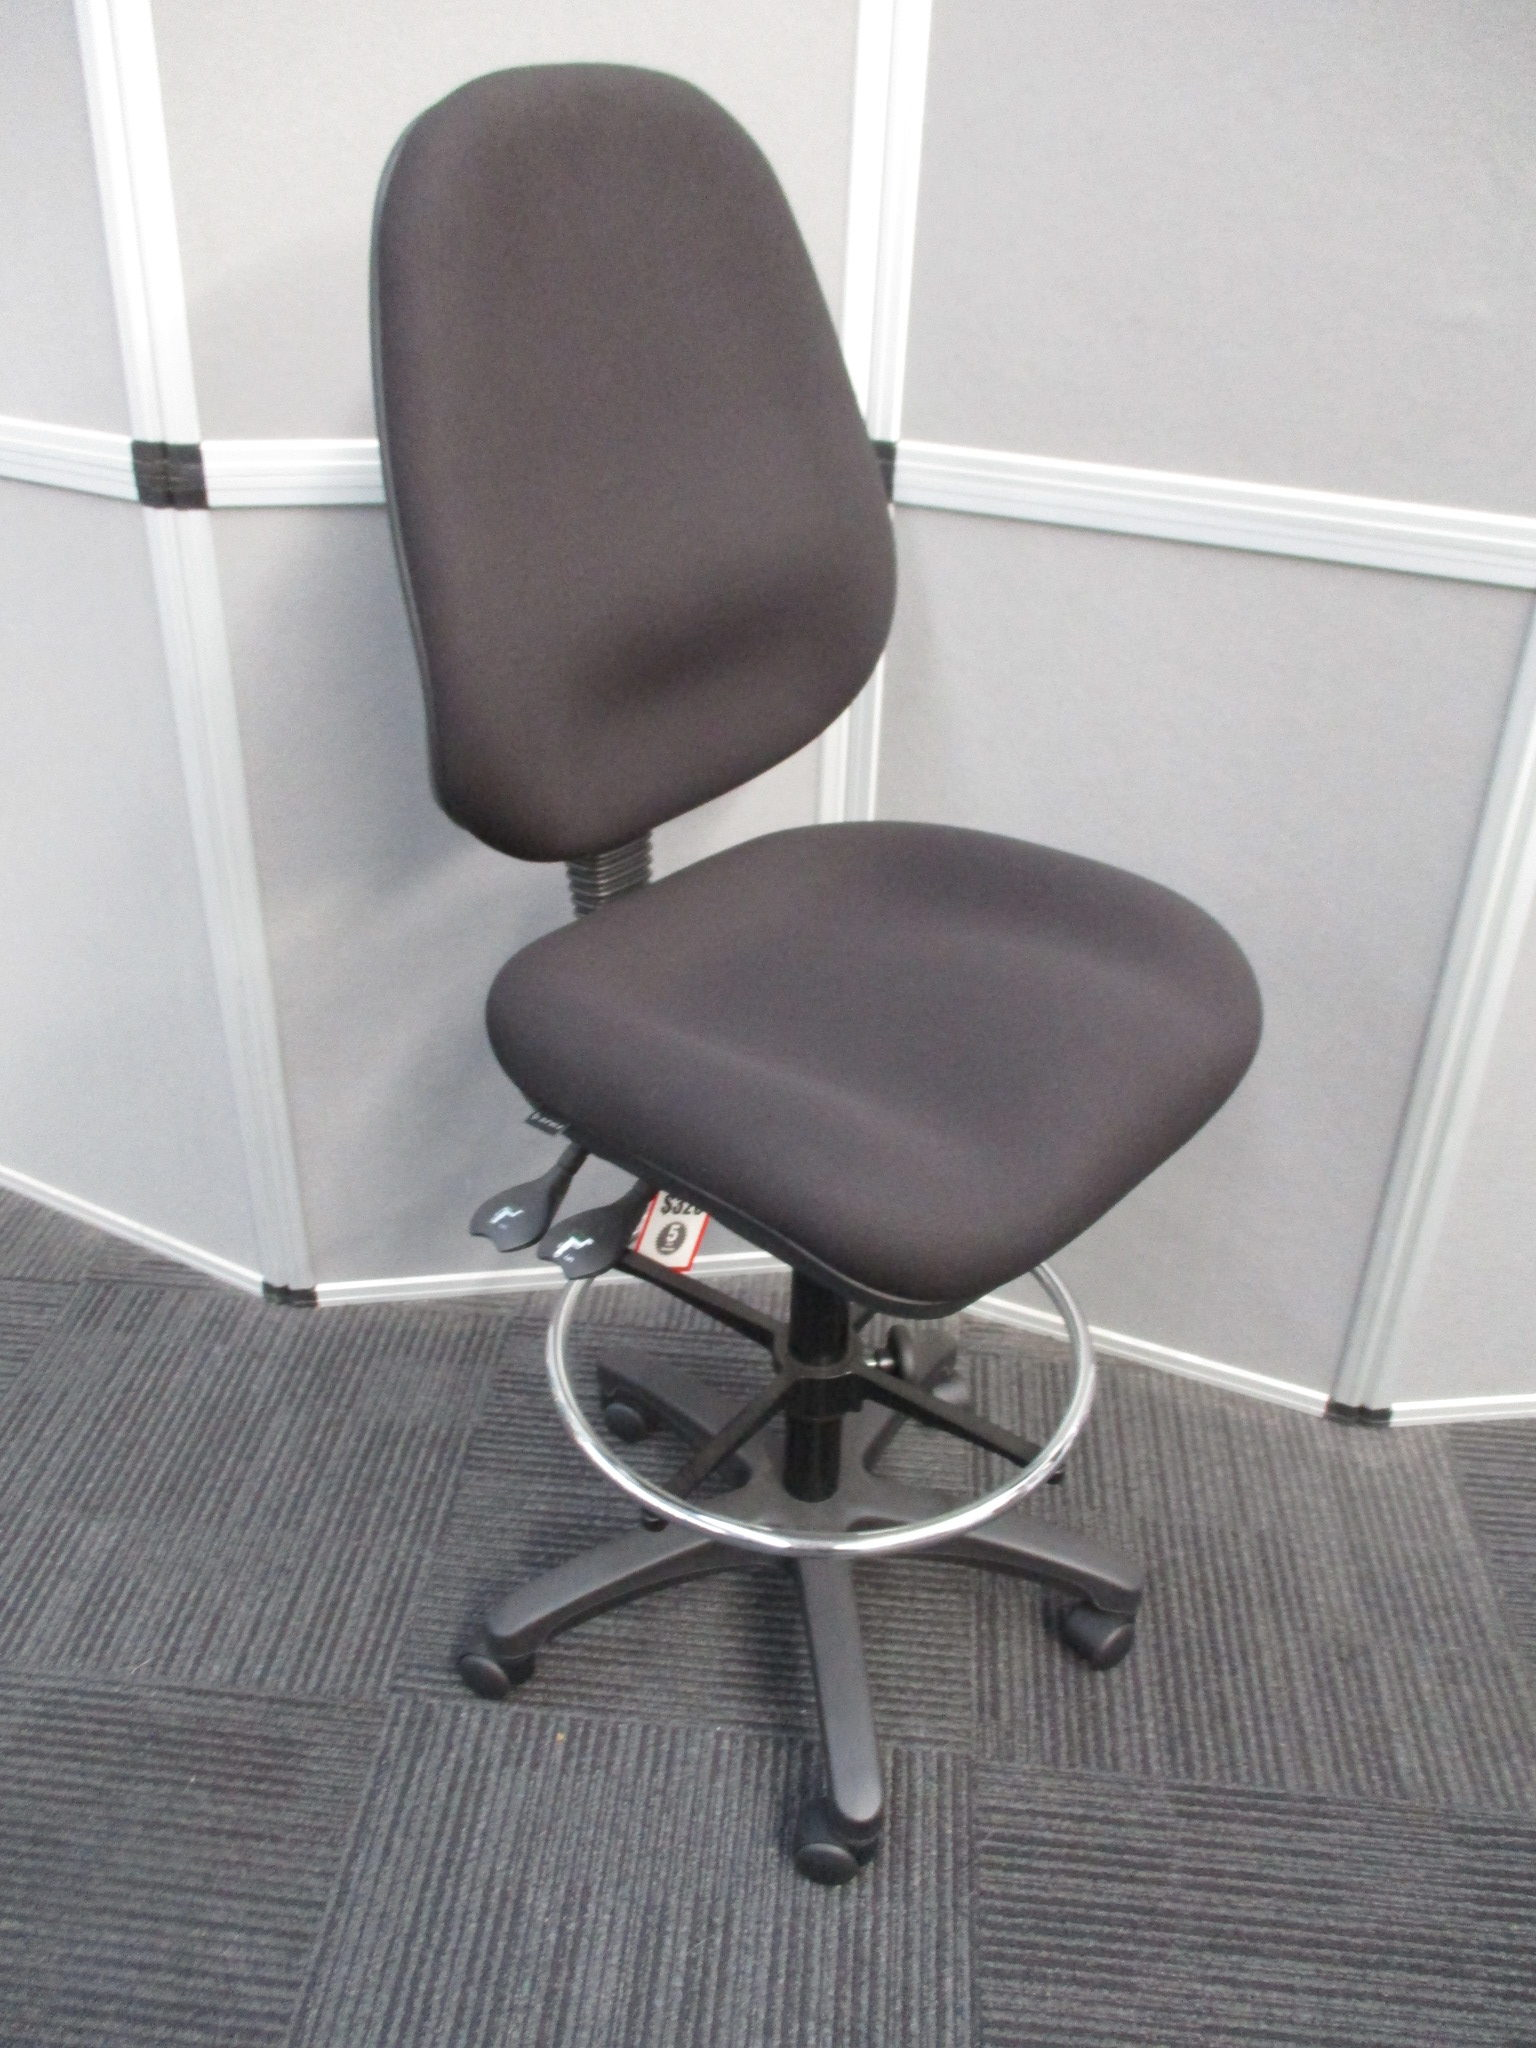 New P350 HB Drafting Chairs $320